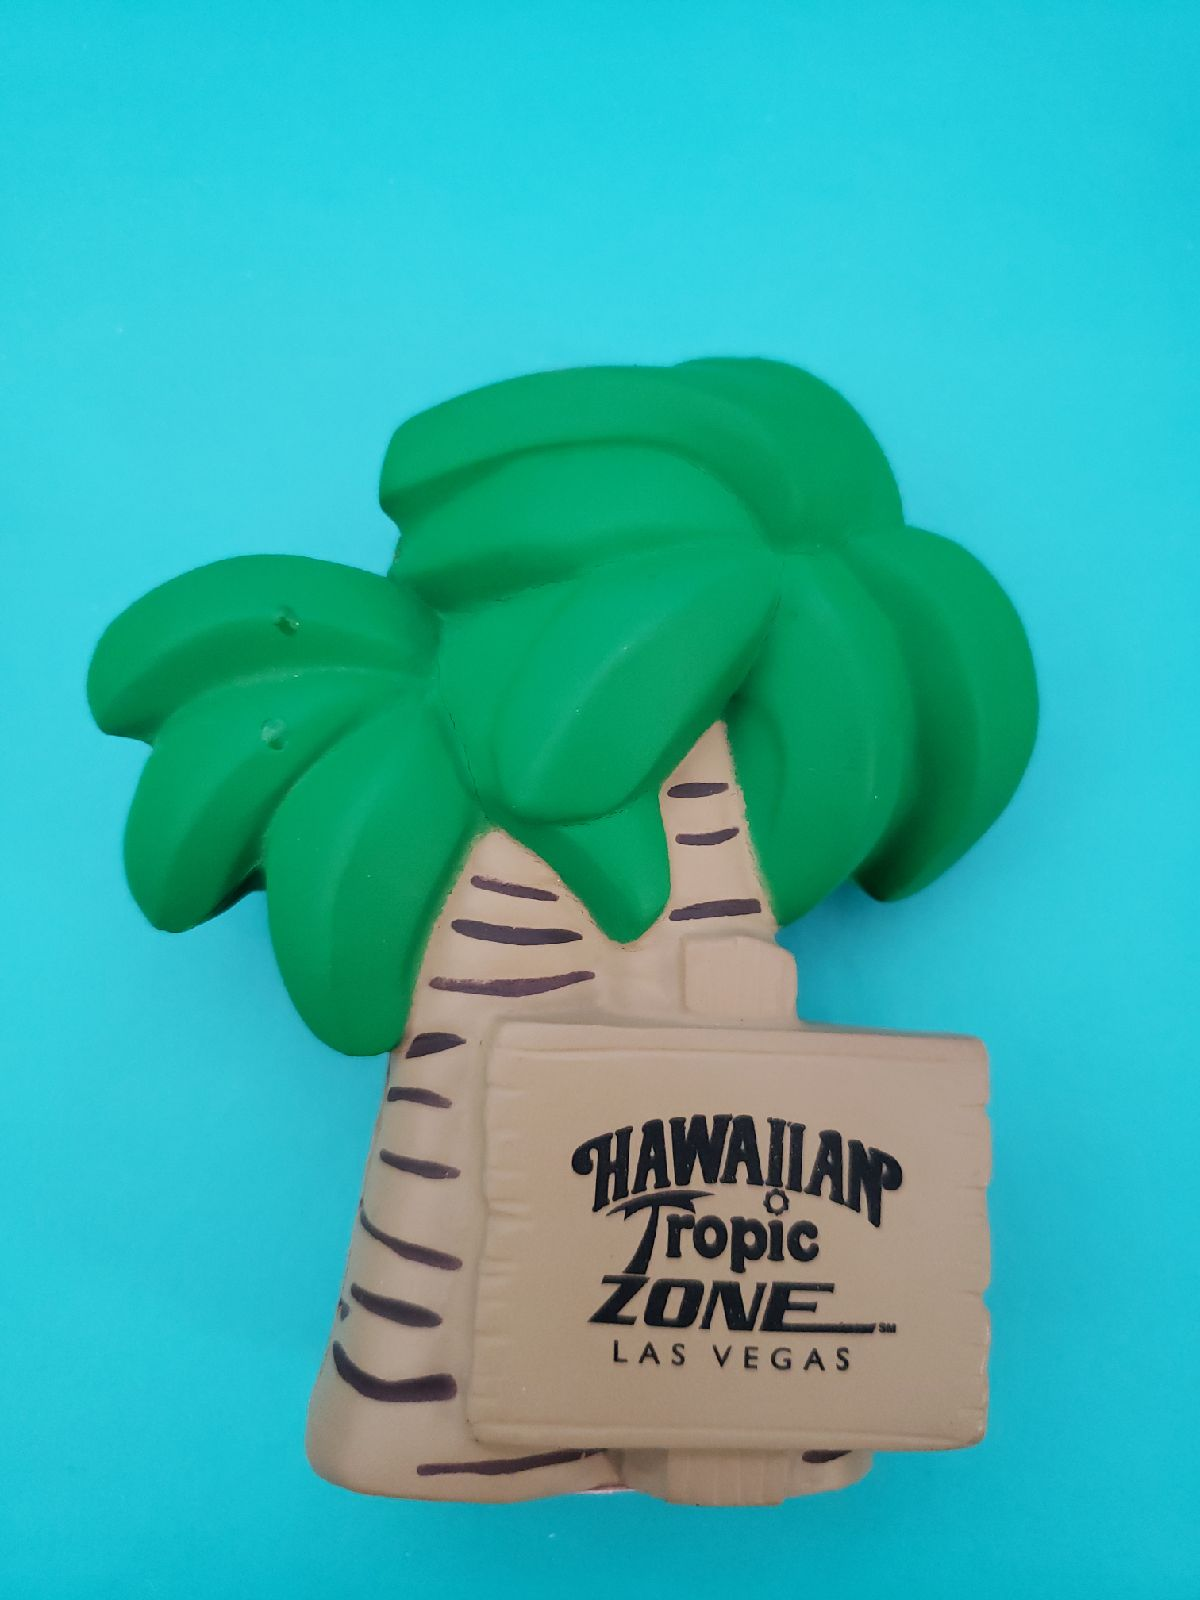 Hawaiian tropic zone Vegas stress Ball